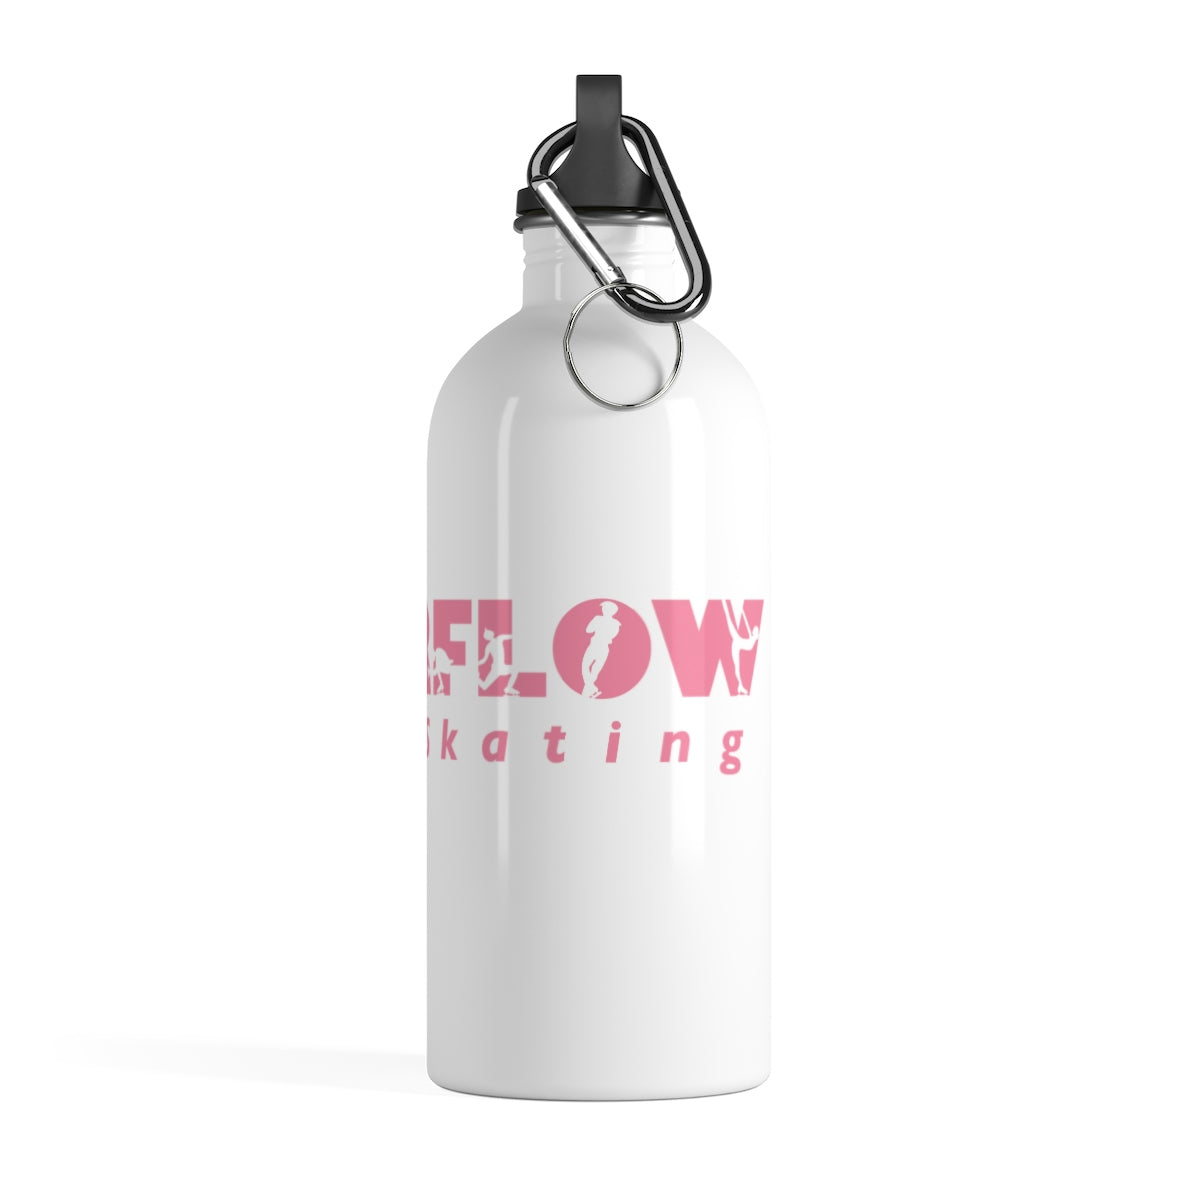 ColorFlow Skating Stainless Steel Water Bottle